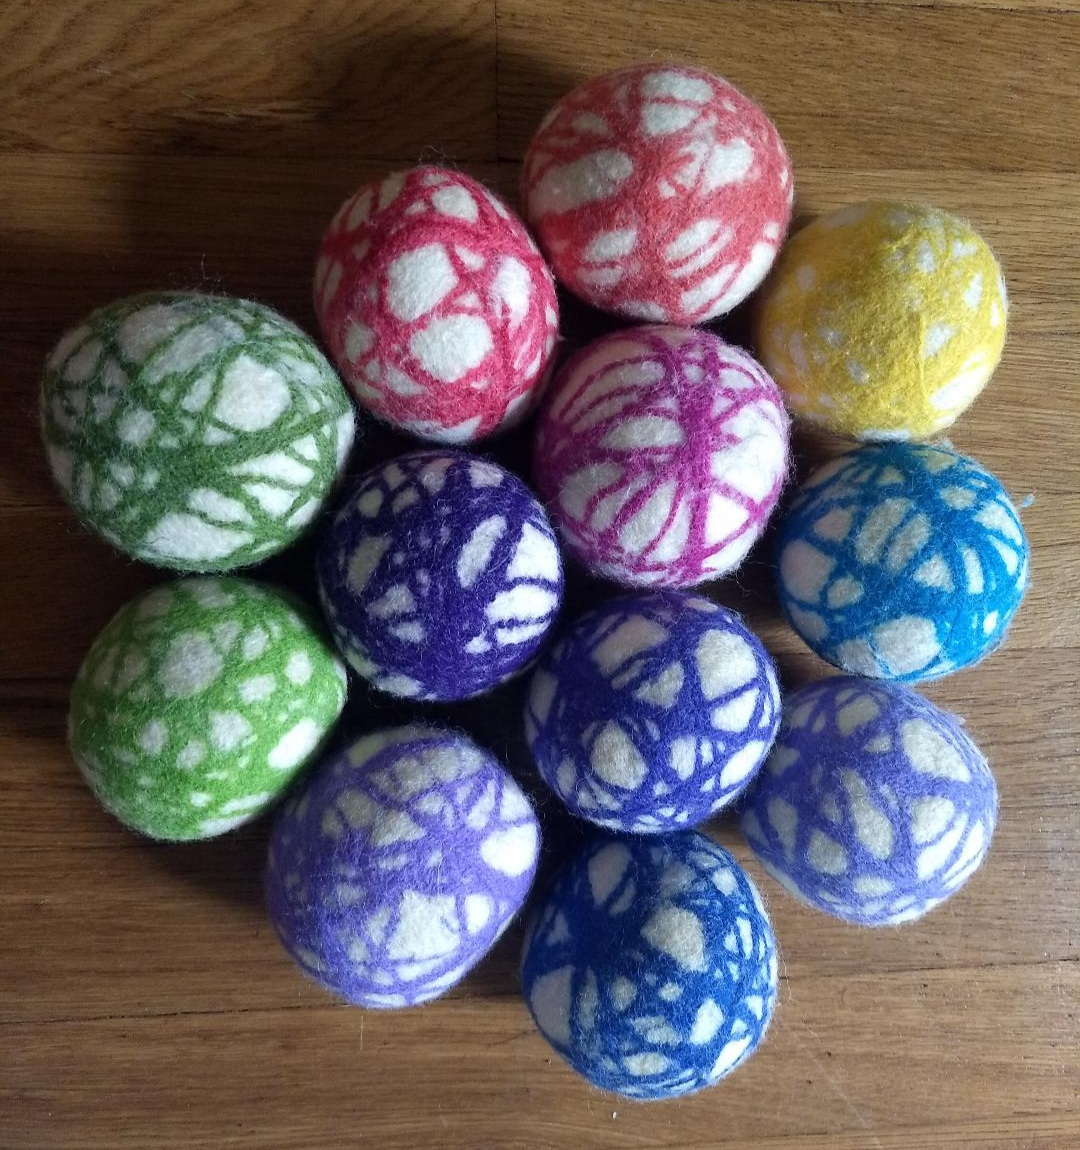 Felted wool dryer balls!  Soften your laundry naturally and cut down drying time with Felted Wool Dryer Balls.